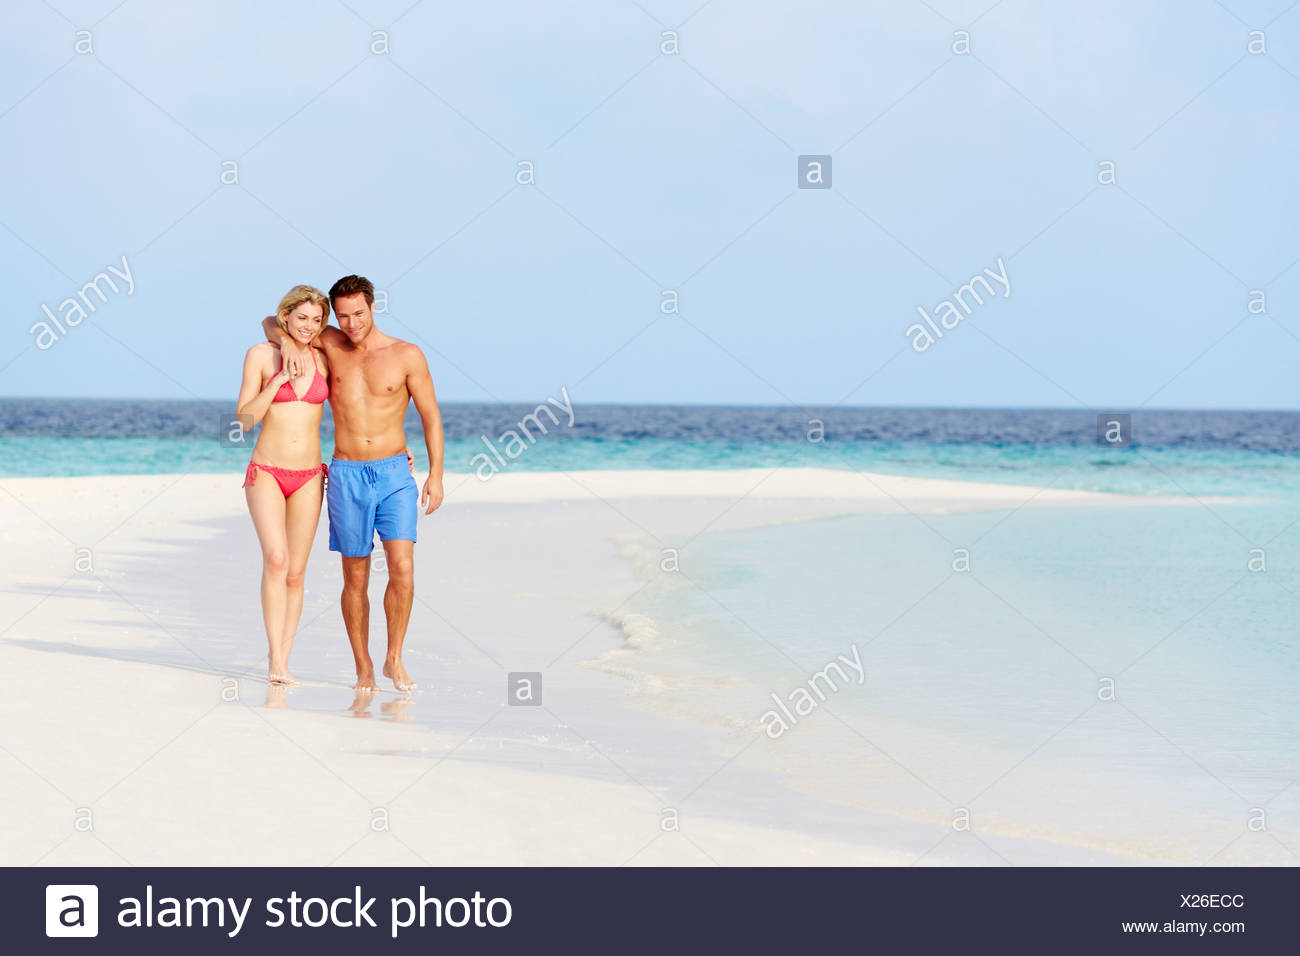 Romantic Couple Walking On Beautiful Tropical Beach - Stock Image